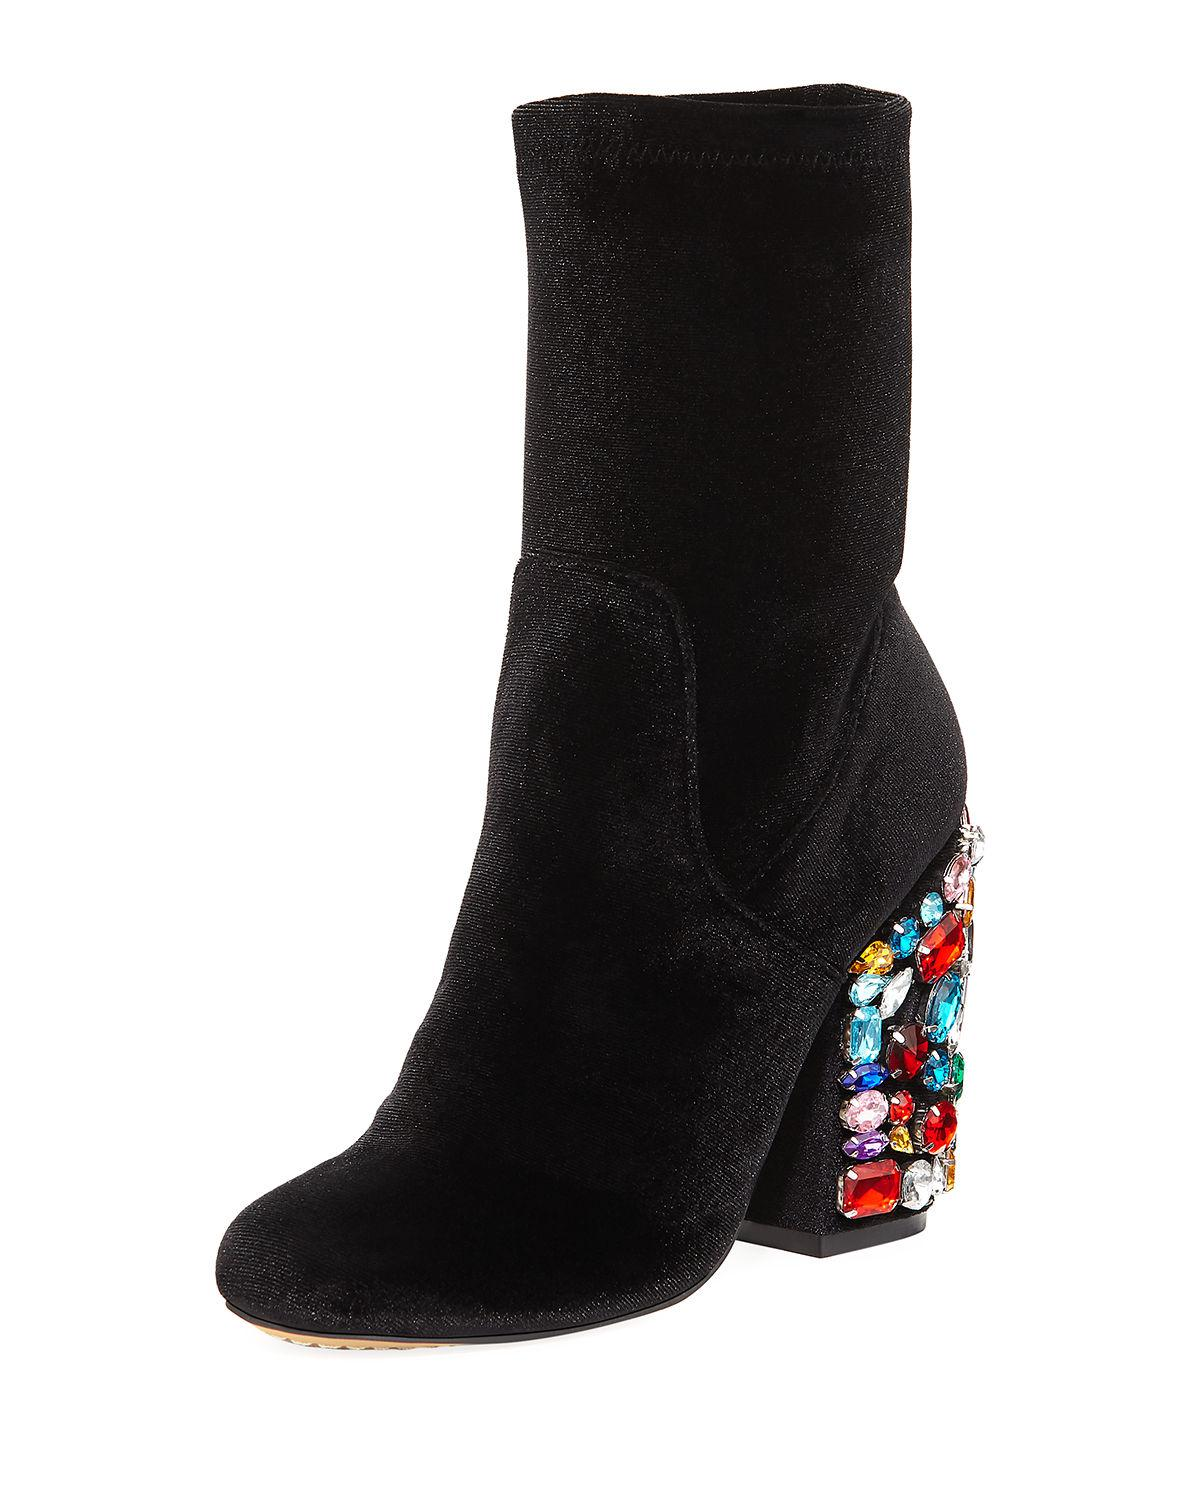 2705be345301 Neiman Marcus. Women s Black Embellished Faux-suede Pearly-heel Bootie